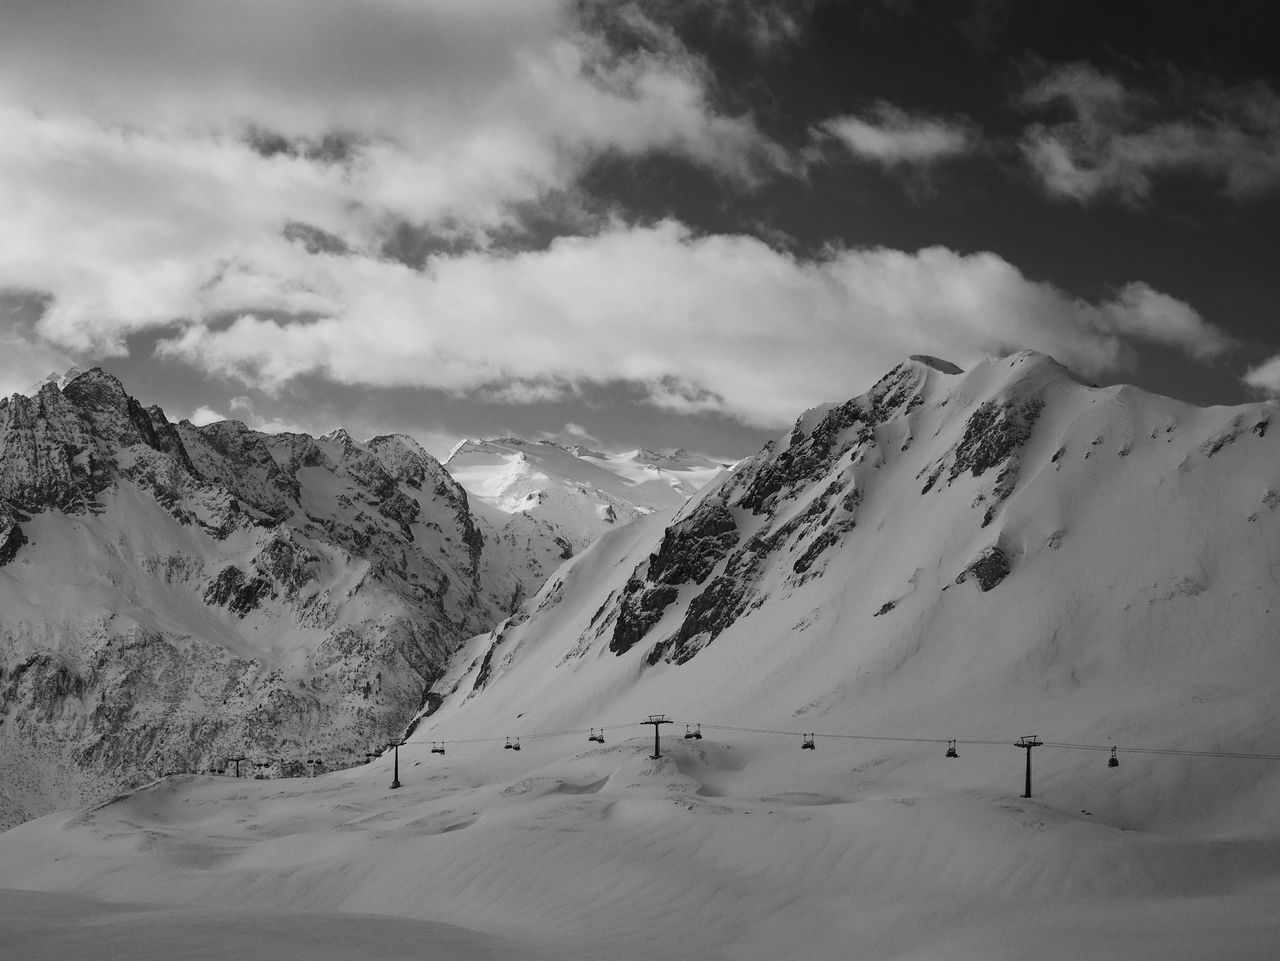 Mountain Mountain Range Nature Snow Beauty In Nature Landscape Cold Temperature Outdoors Scenics Mountain Peak No People Sky Day Ski Lift Passo Tonale Italy Winterscapes Skiing Glacier Adventure Beauty In Nature Winter Snowboarding Pow